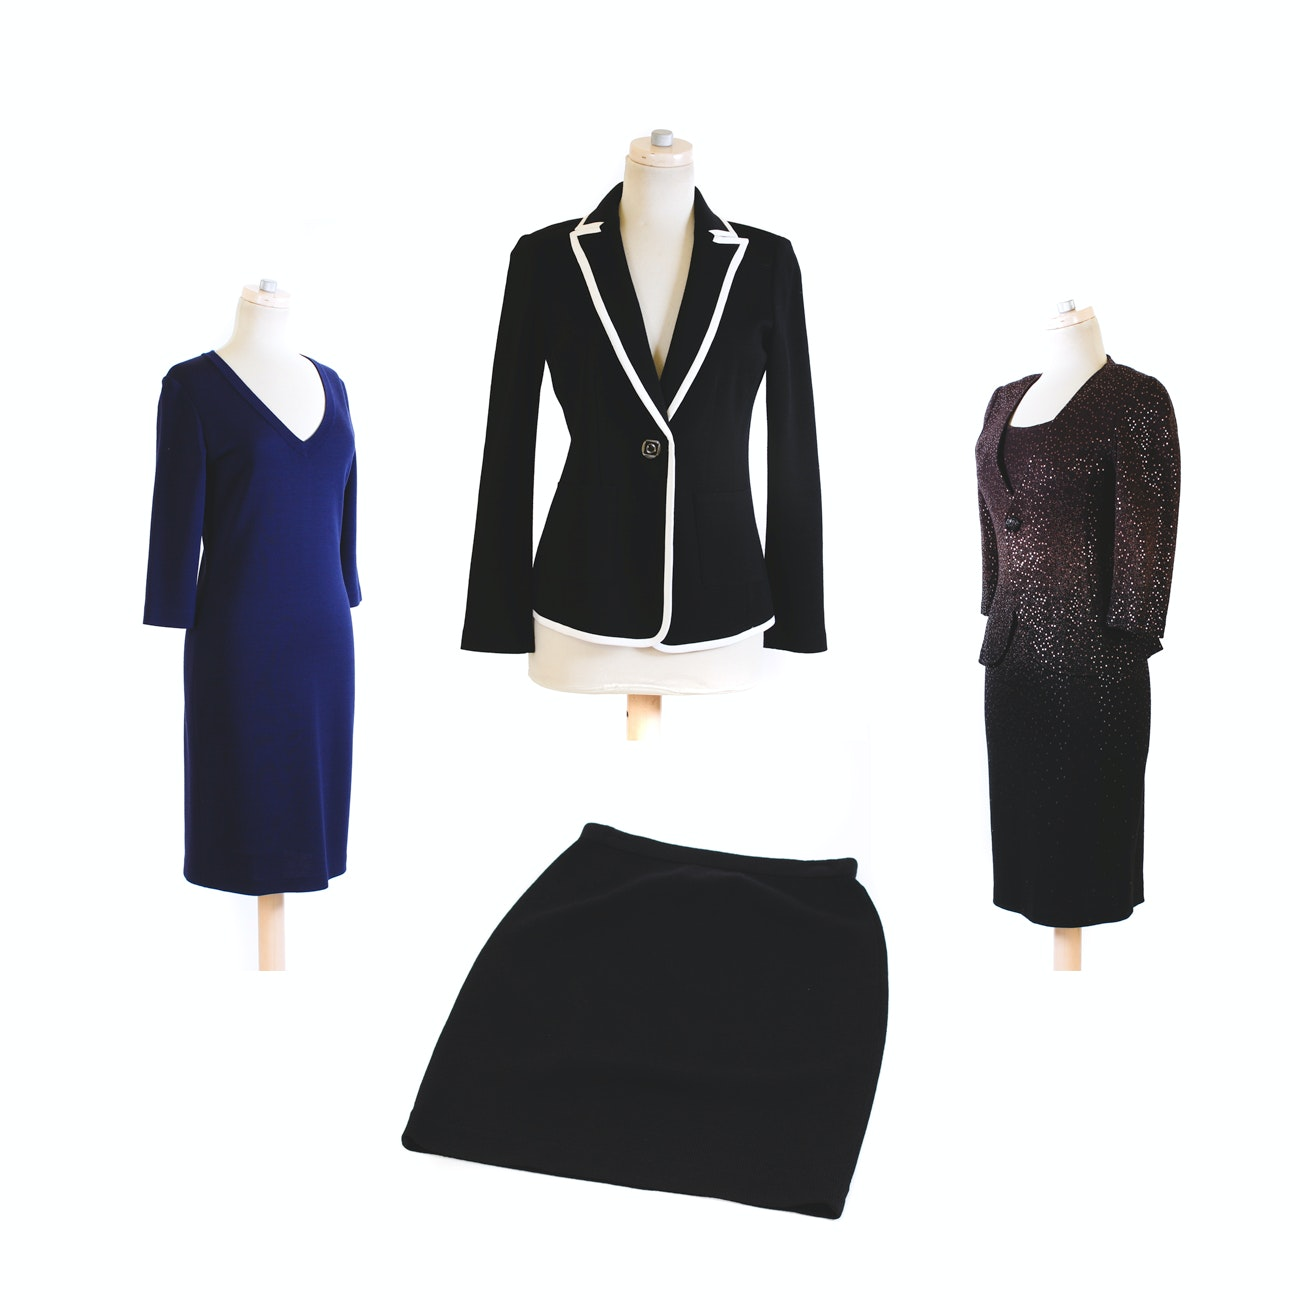 St. John and St. John Caviar Dresses, Jacket and Skirt